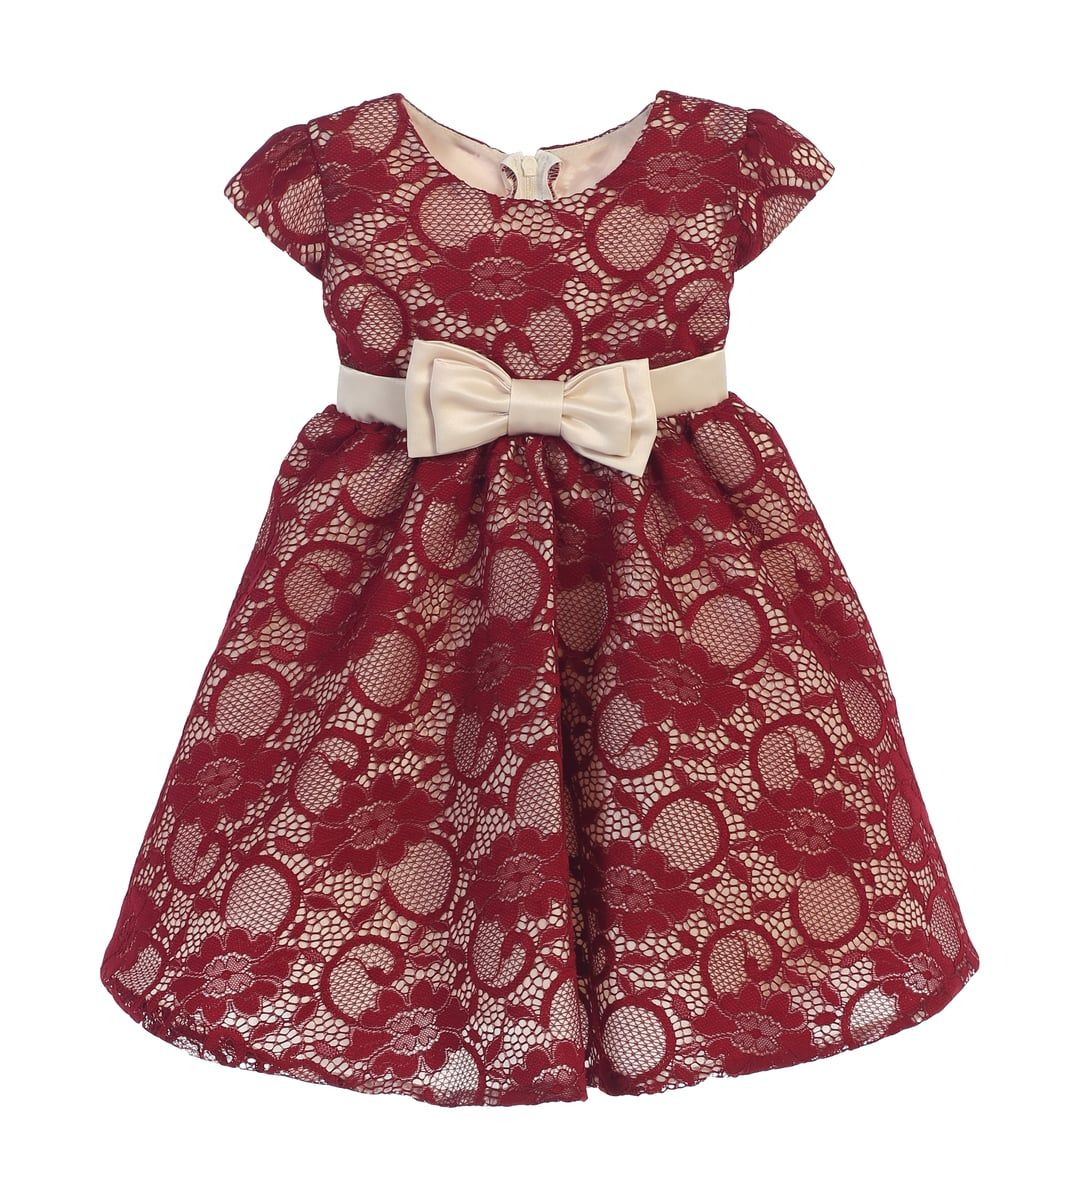 This beautiful dress is ideal for dances, parties, holidays